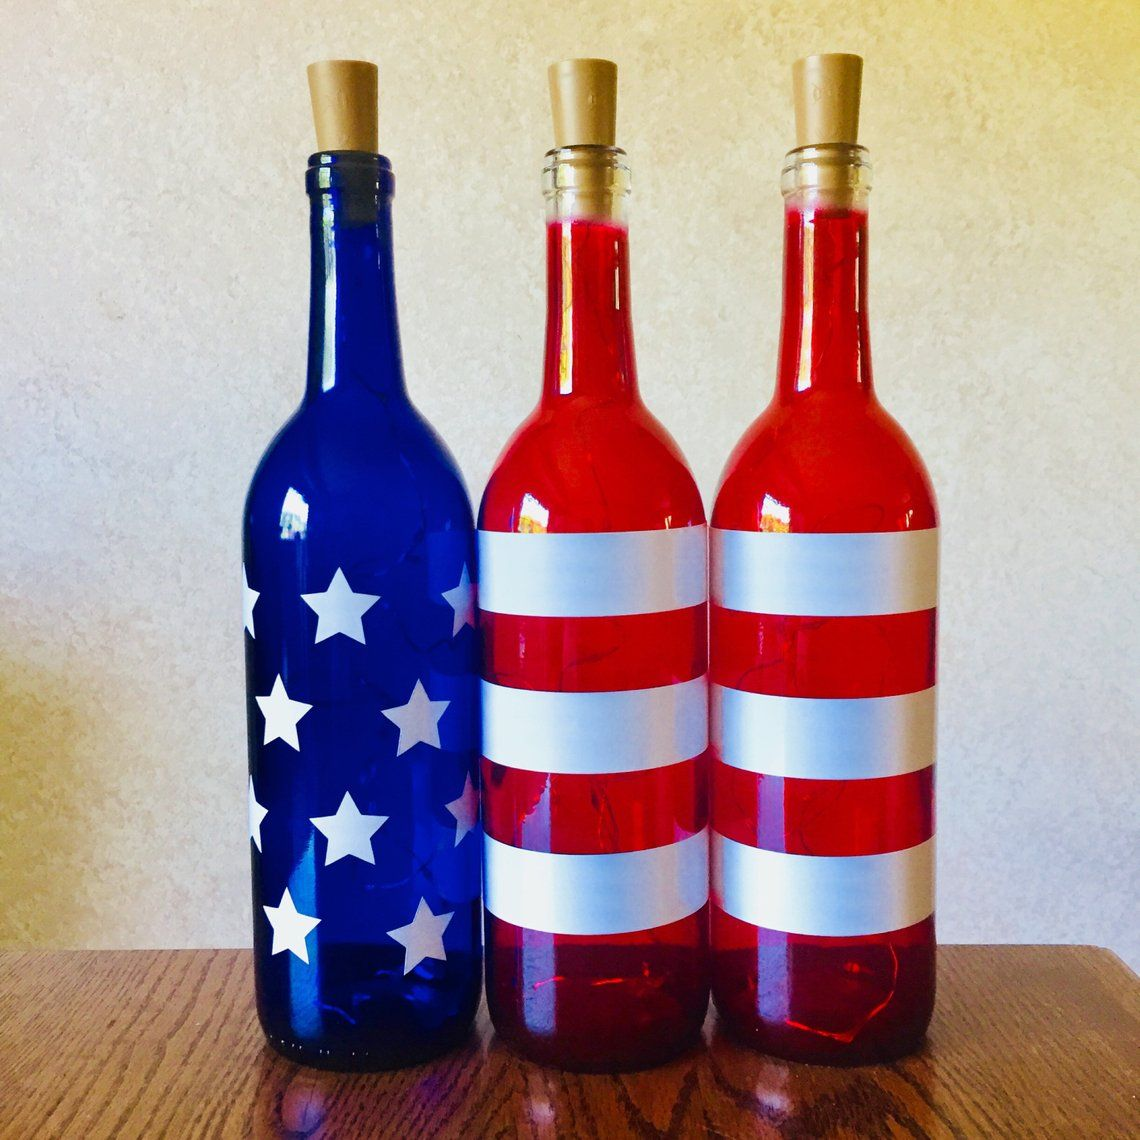 Patriotic Wine Bottles With Or Without Twinkle Fairy Lights Etsy In 2020 Wine Bottle Decor Bottles Decoration Valentines Wine Bottle Crafts